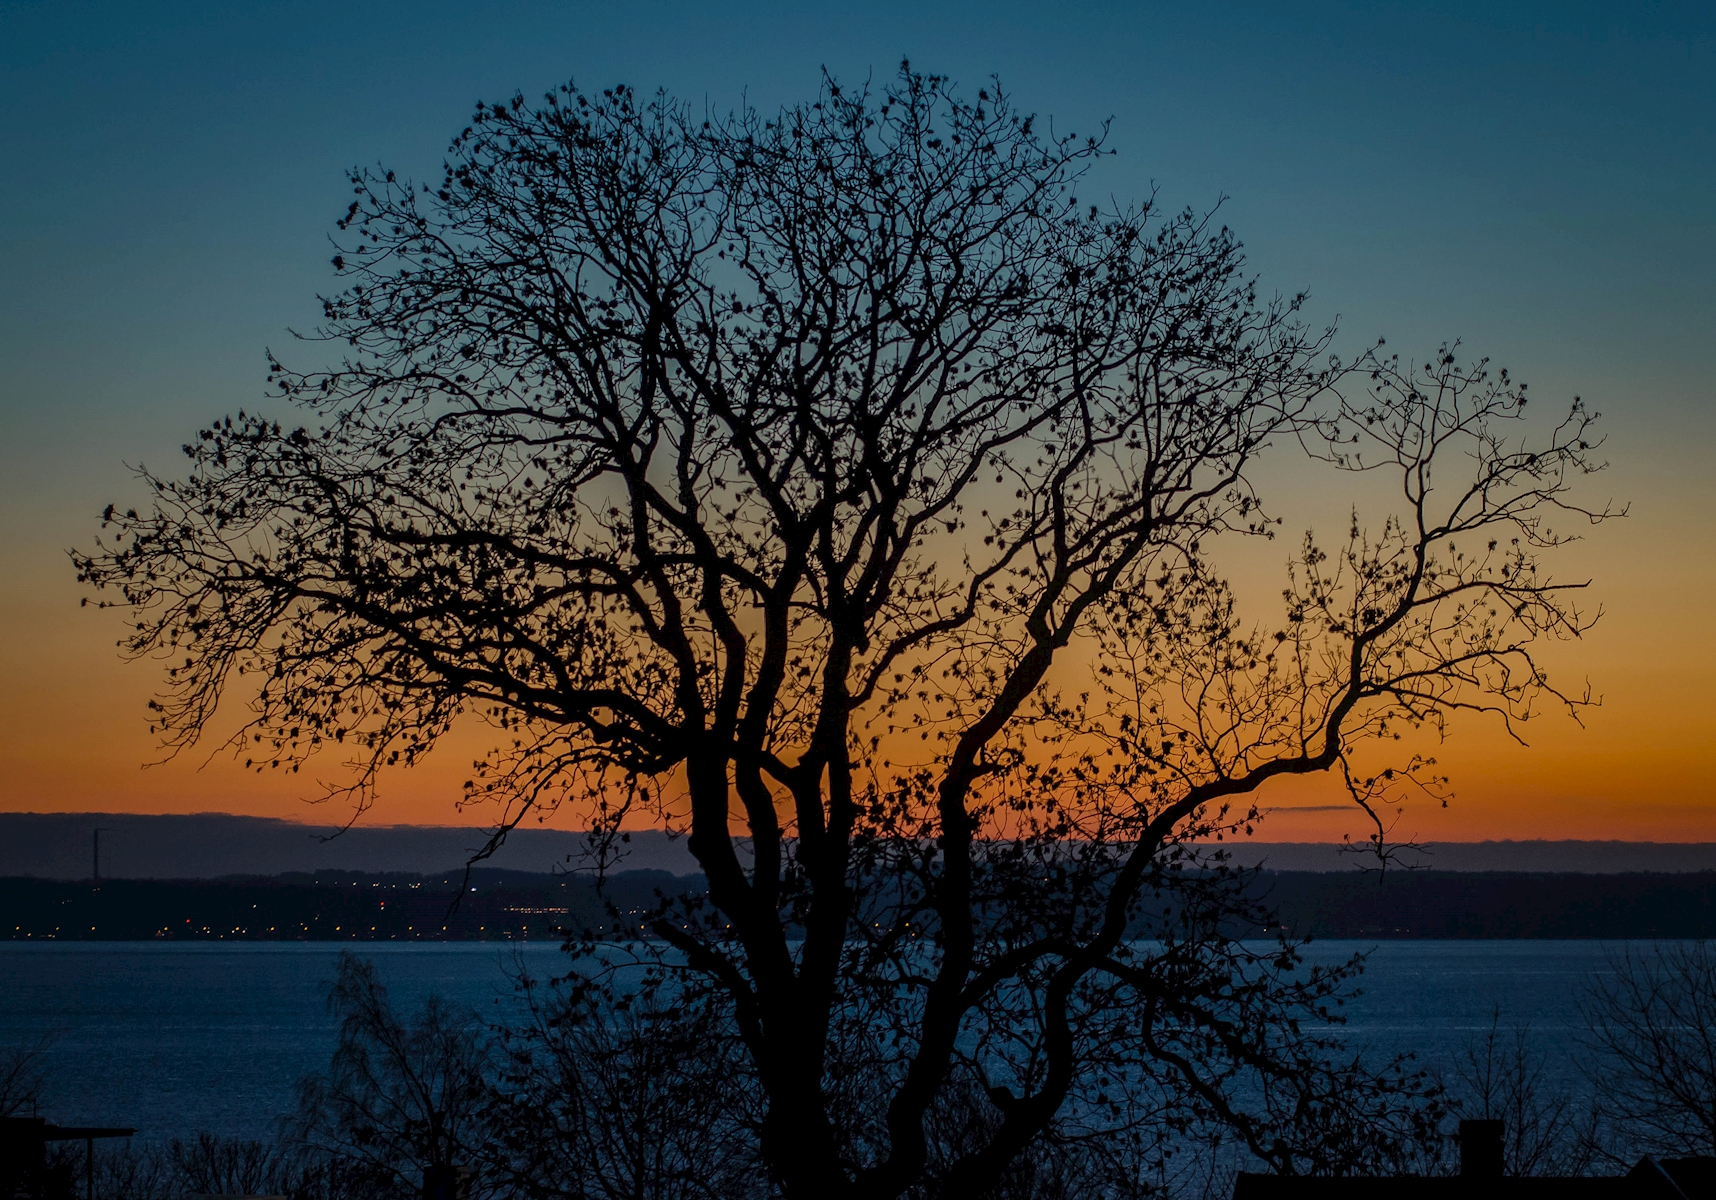 Tree at sunset posters & prints by Frank Hellsten